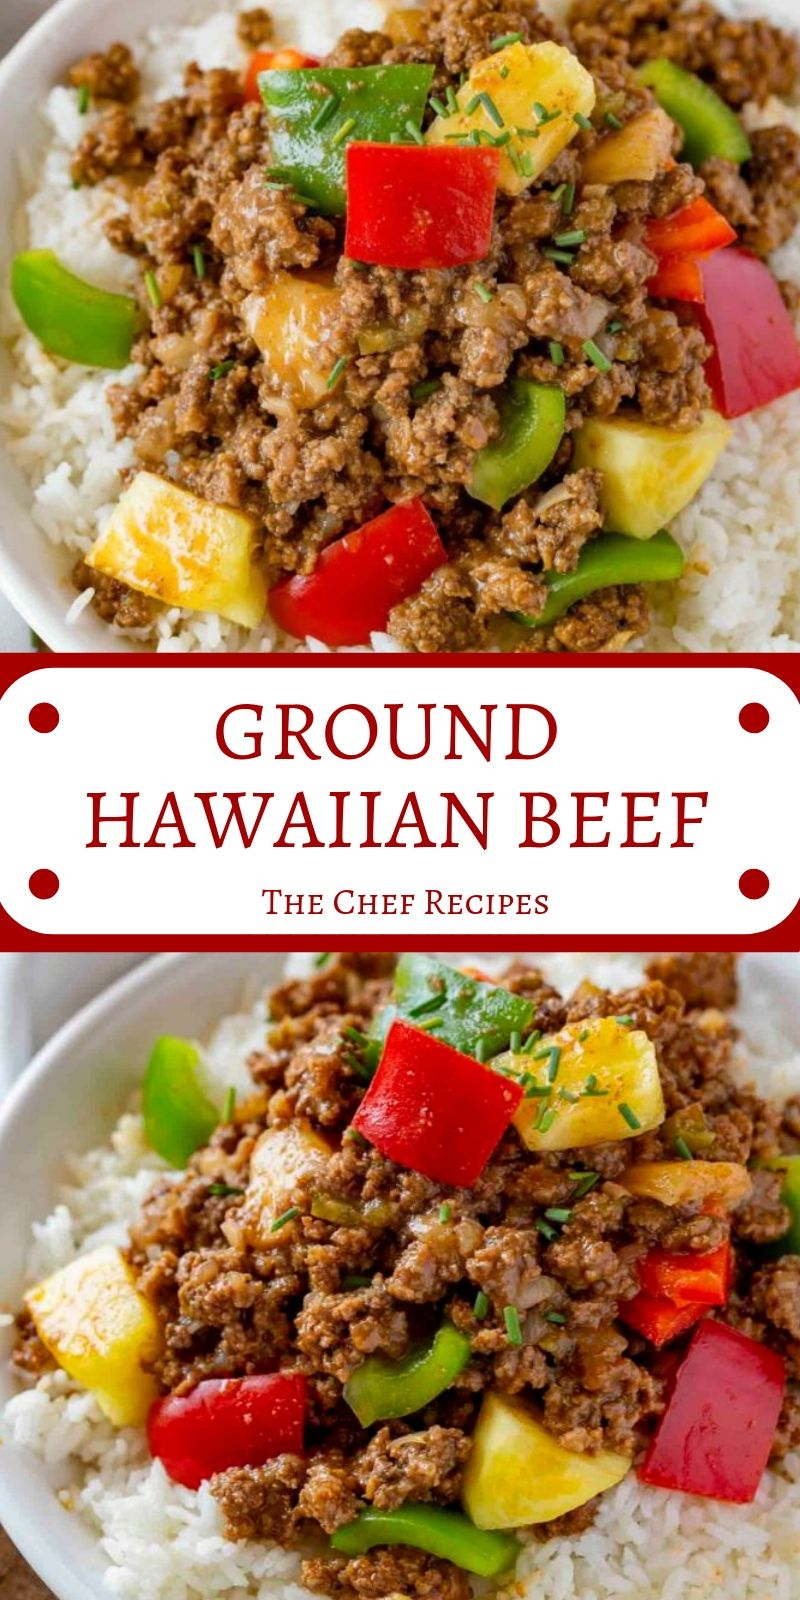 Ground Hawaiian Beef Healthy Ground Beef Beef Recipes For Dinner Beef Dinner